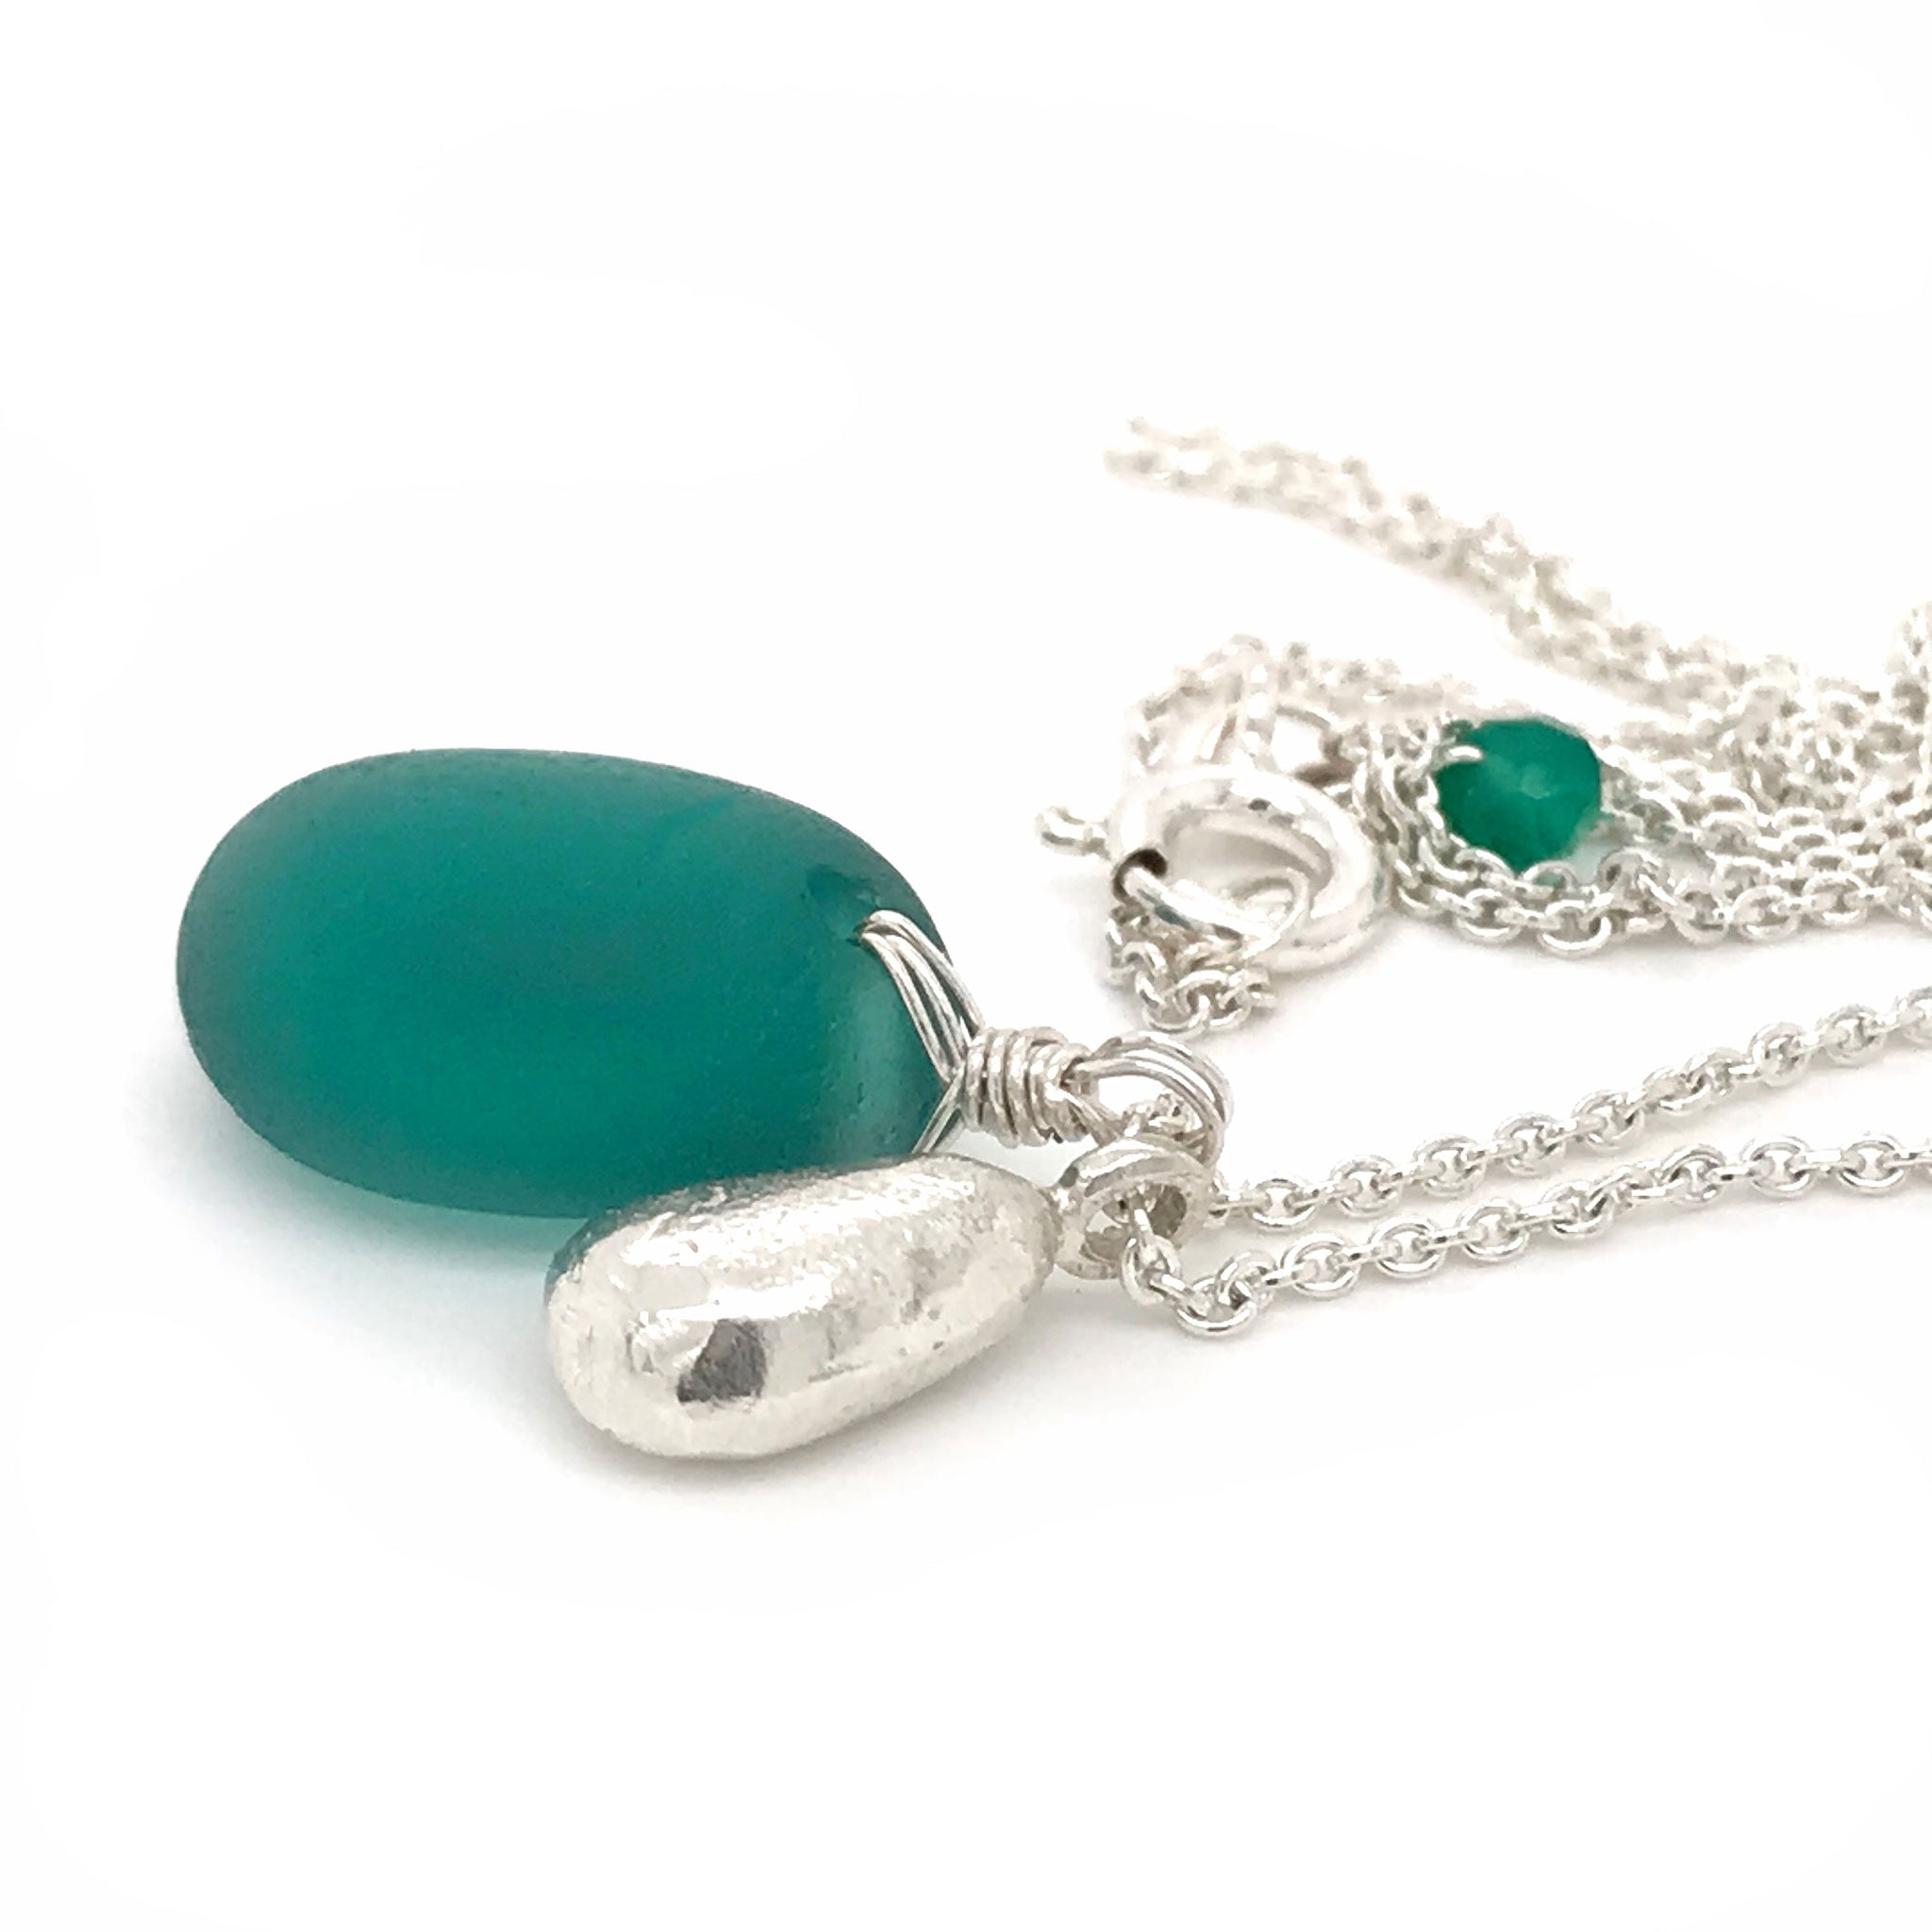 teal seaglass necklace on sterling silver chain with solid silver teardrop charm Kriket Broadhurst jewellery gift for wife